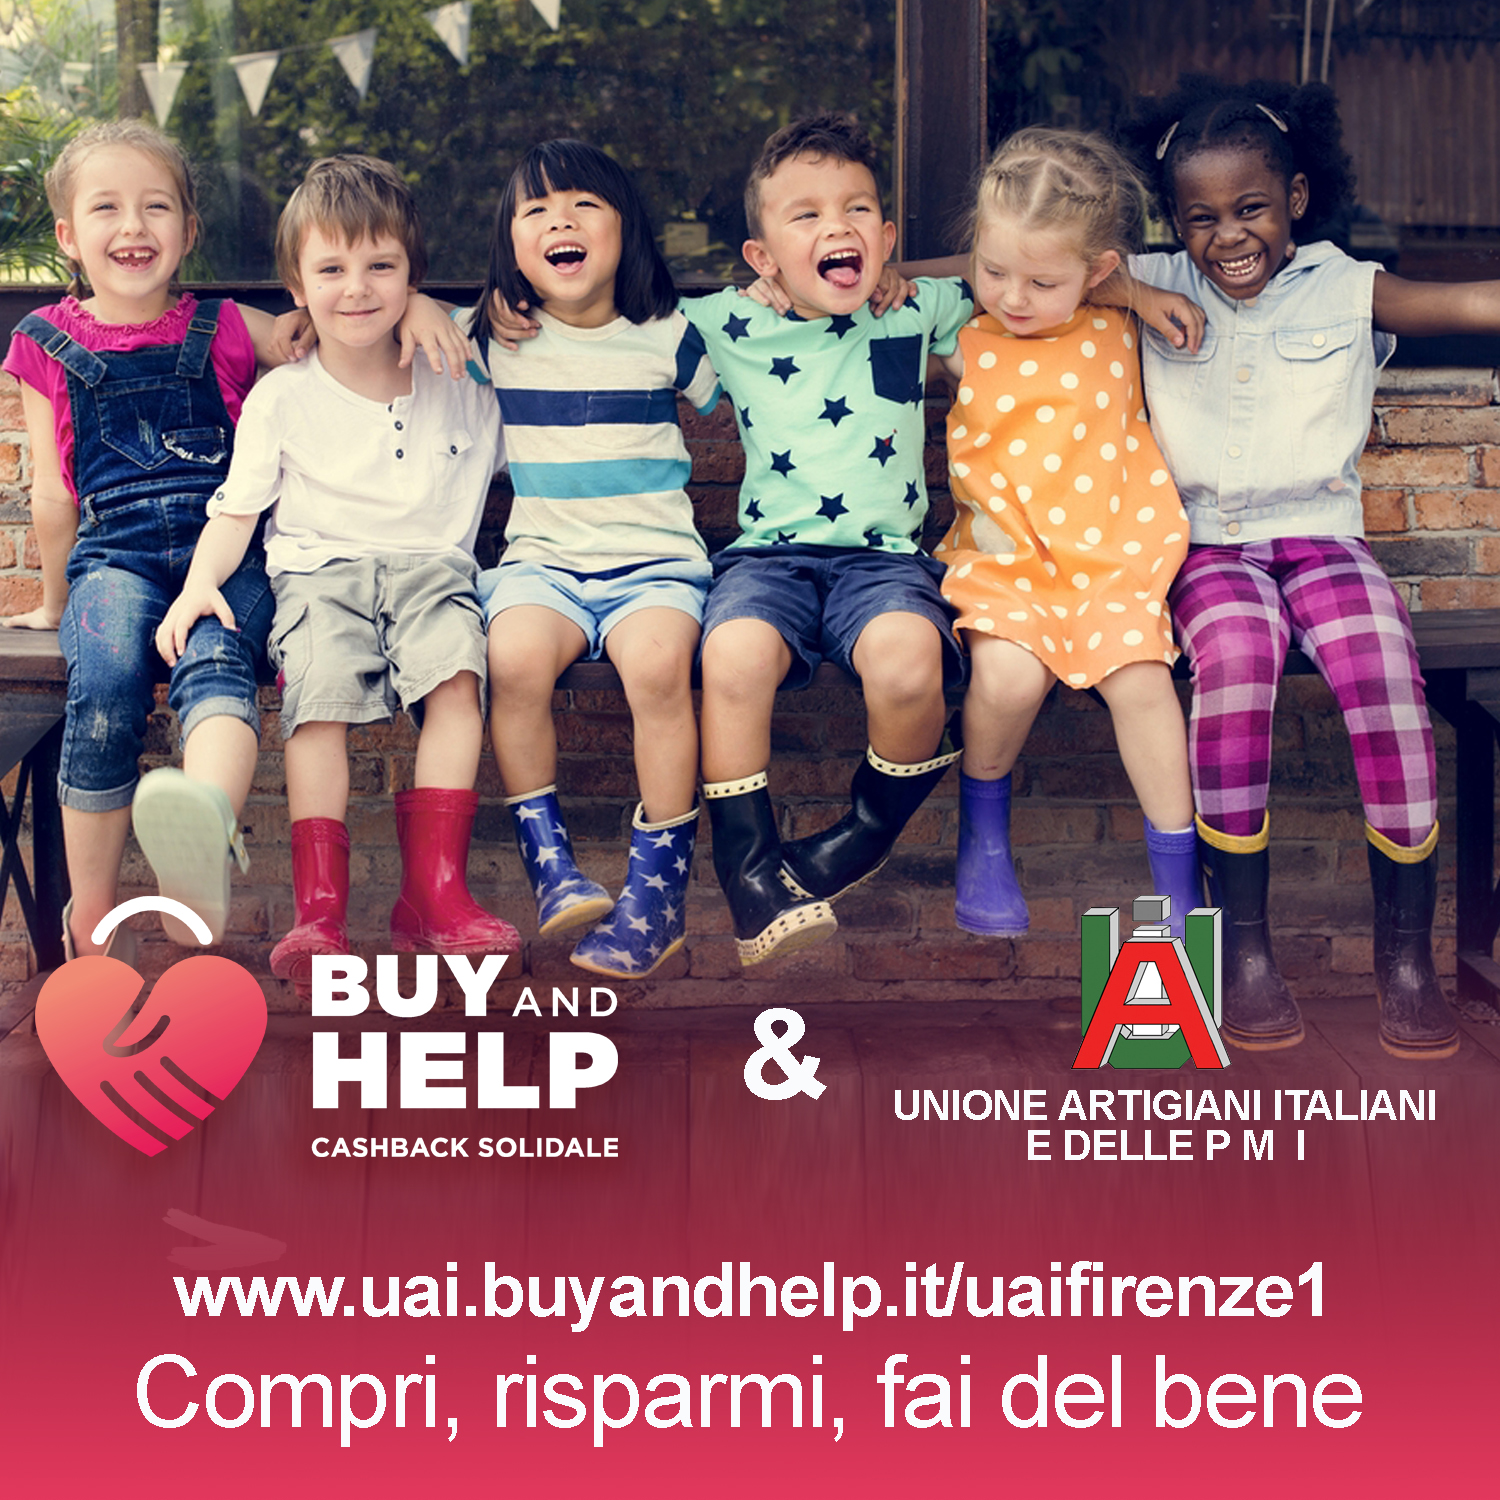 UAI Buy & Help portale di acquisti solidali on-line - Compra e Aiuta